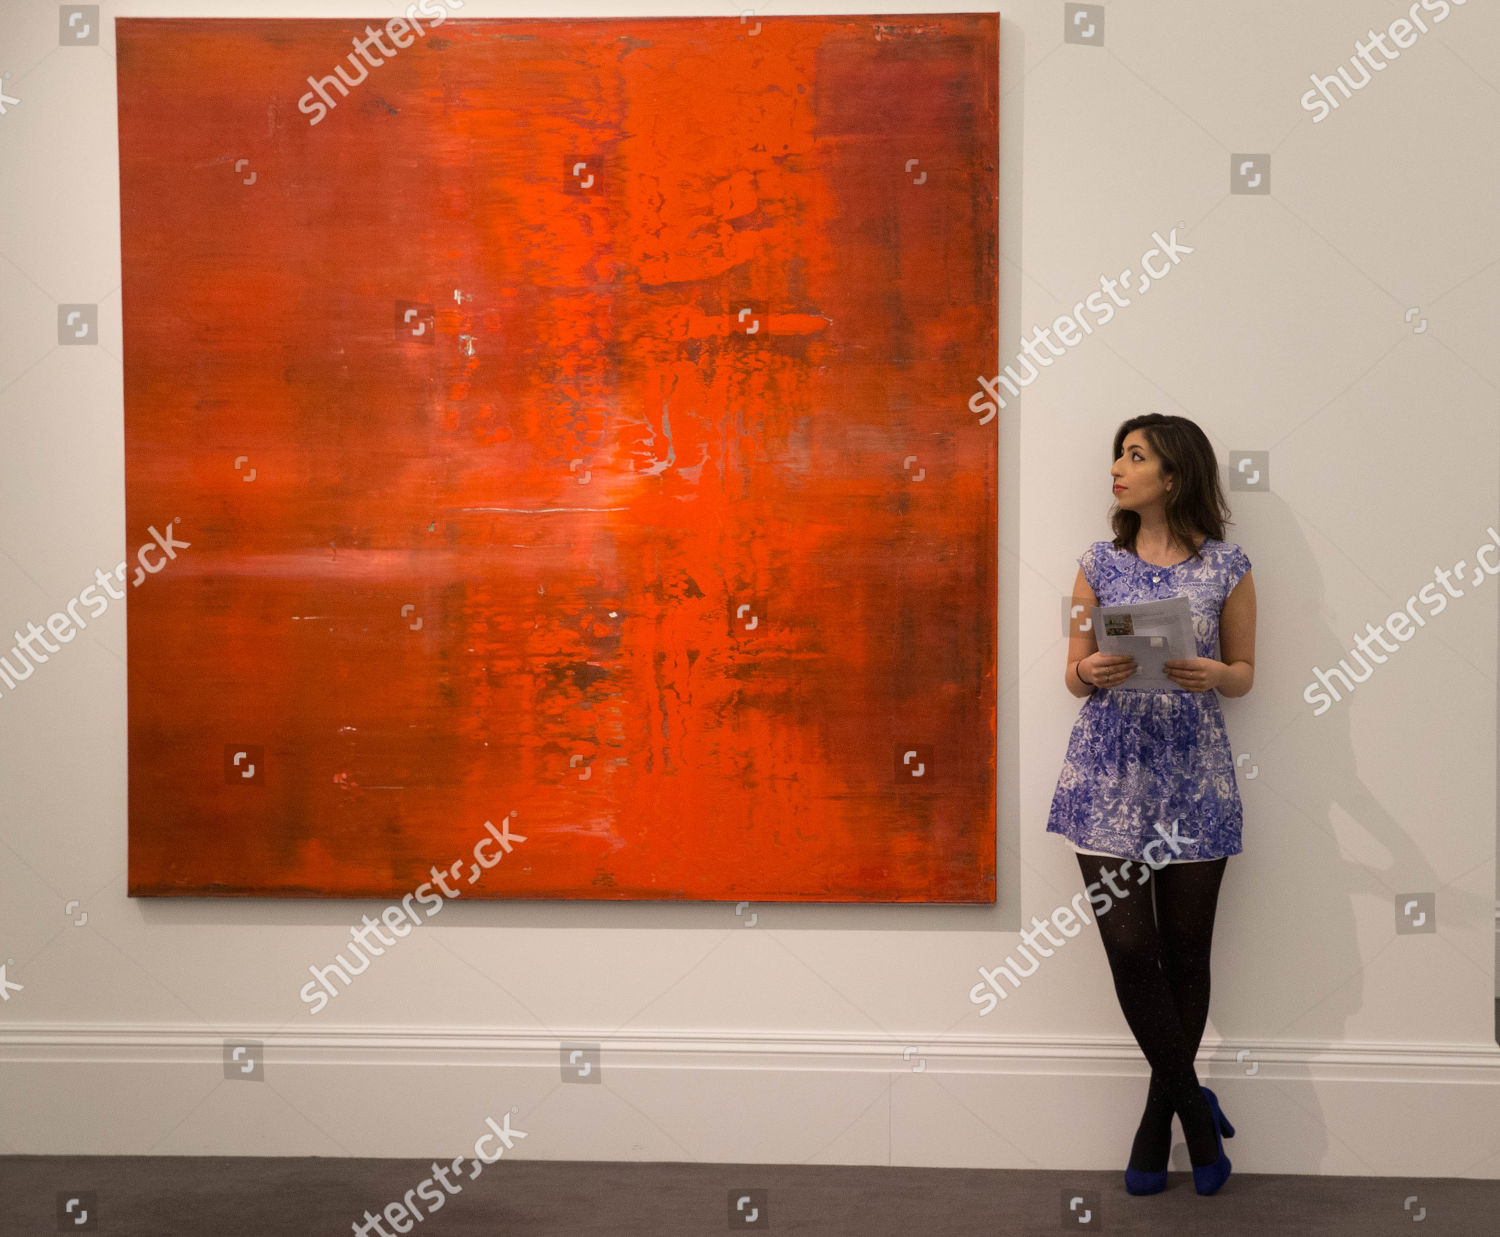 Abstraktes Bild By Gerhard Richter Valued 1520 Editorial Stock Photo Stock Image Shutterstock